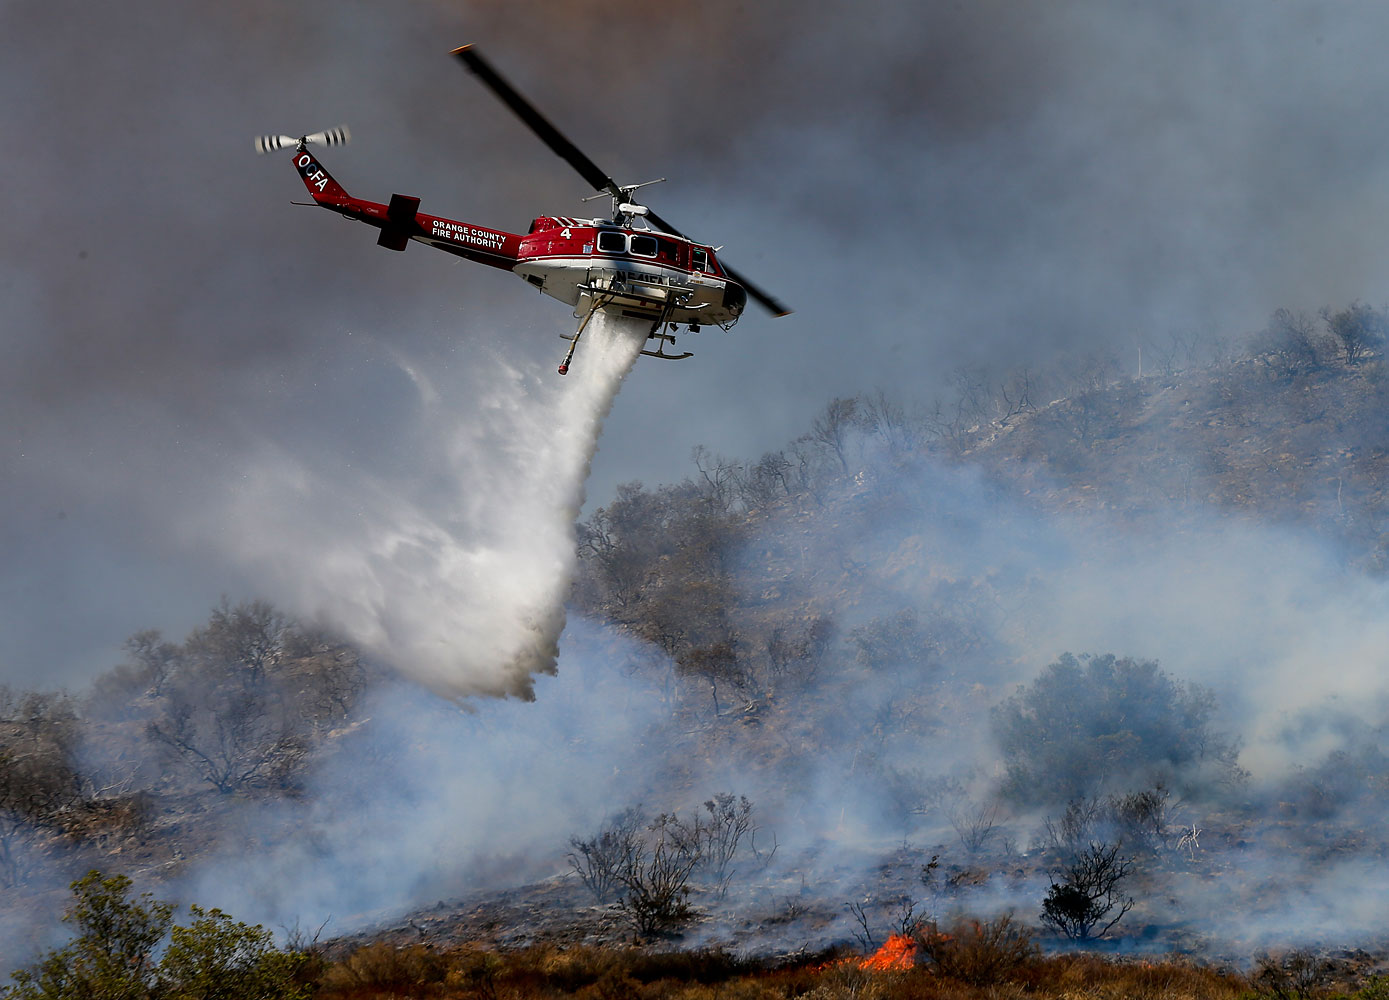 More than 280 firefighters are aided by water dropping helicopters and fixed-wing aircraft as they battle a 1,300-acre fire in Silverado Canyon, Calif., on Sept. 12, 2014.